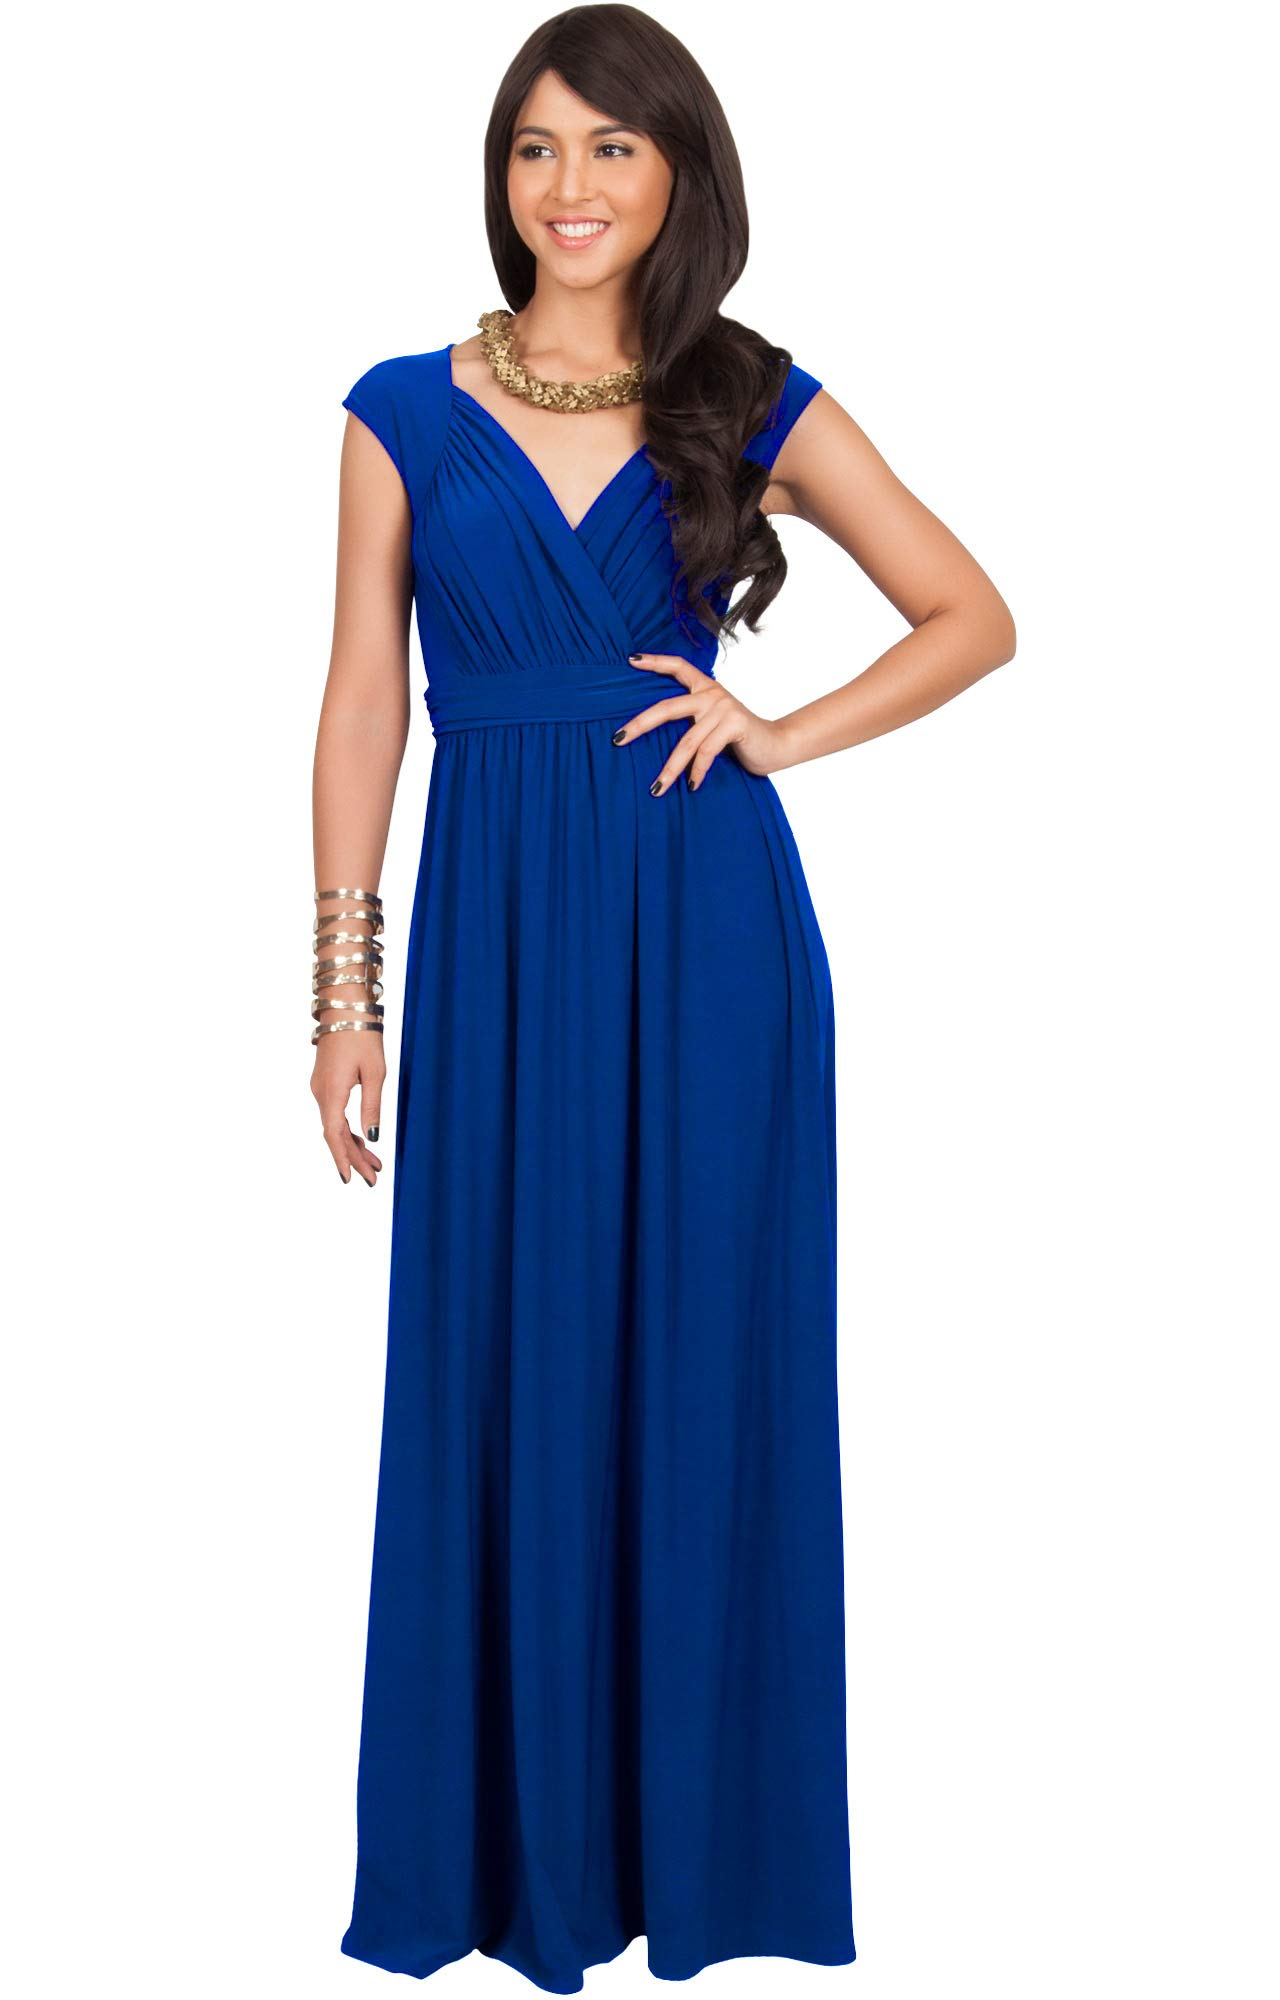 10ee3e7750d KOH KOH Petite Womens Long Cap Short Sleeve Cocktail Evening Sleeveless  Bridesmaid Wedding Party Flowy V-Neck Empire Waist Vintage Sexy Gown Gowns  Maxi ...